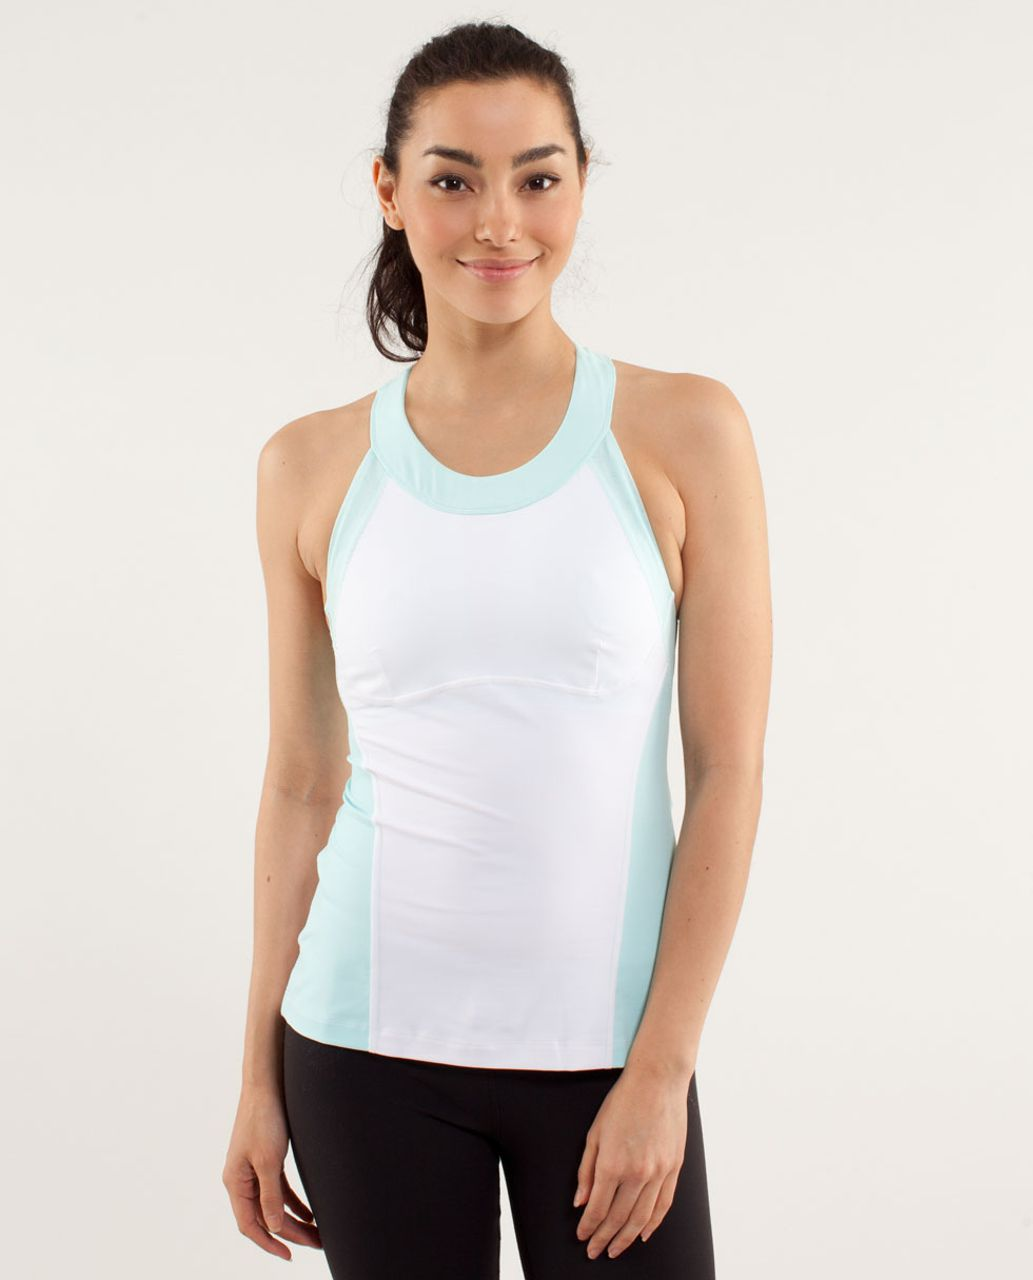 Lululemon Run:  Make It Count Tank - White / Aquamarine